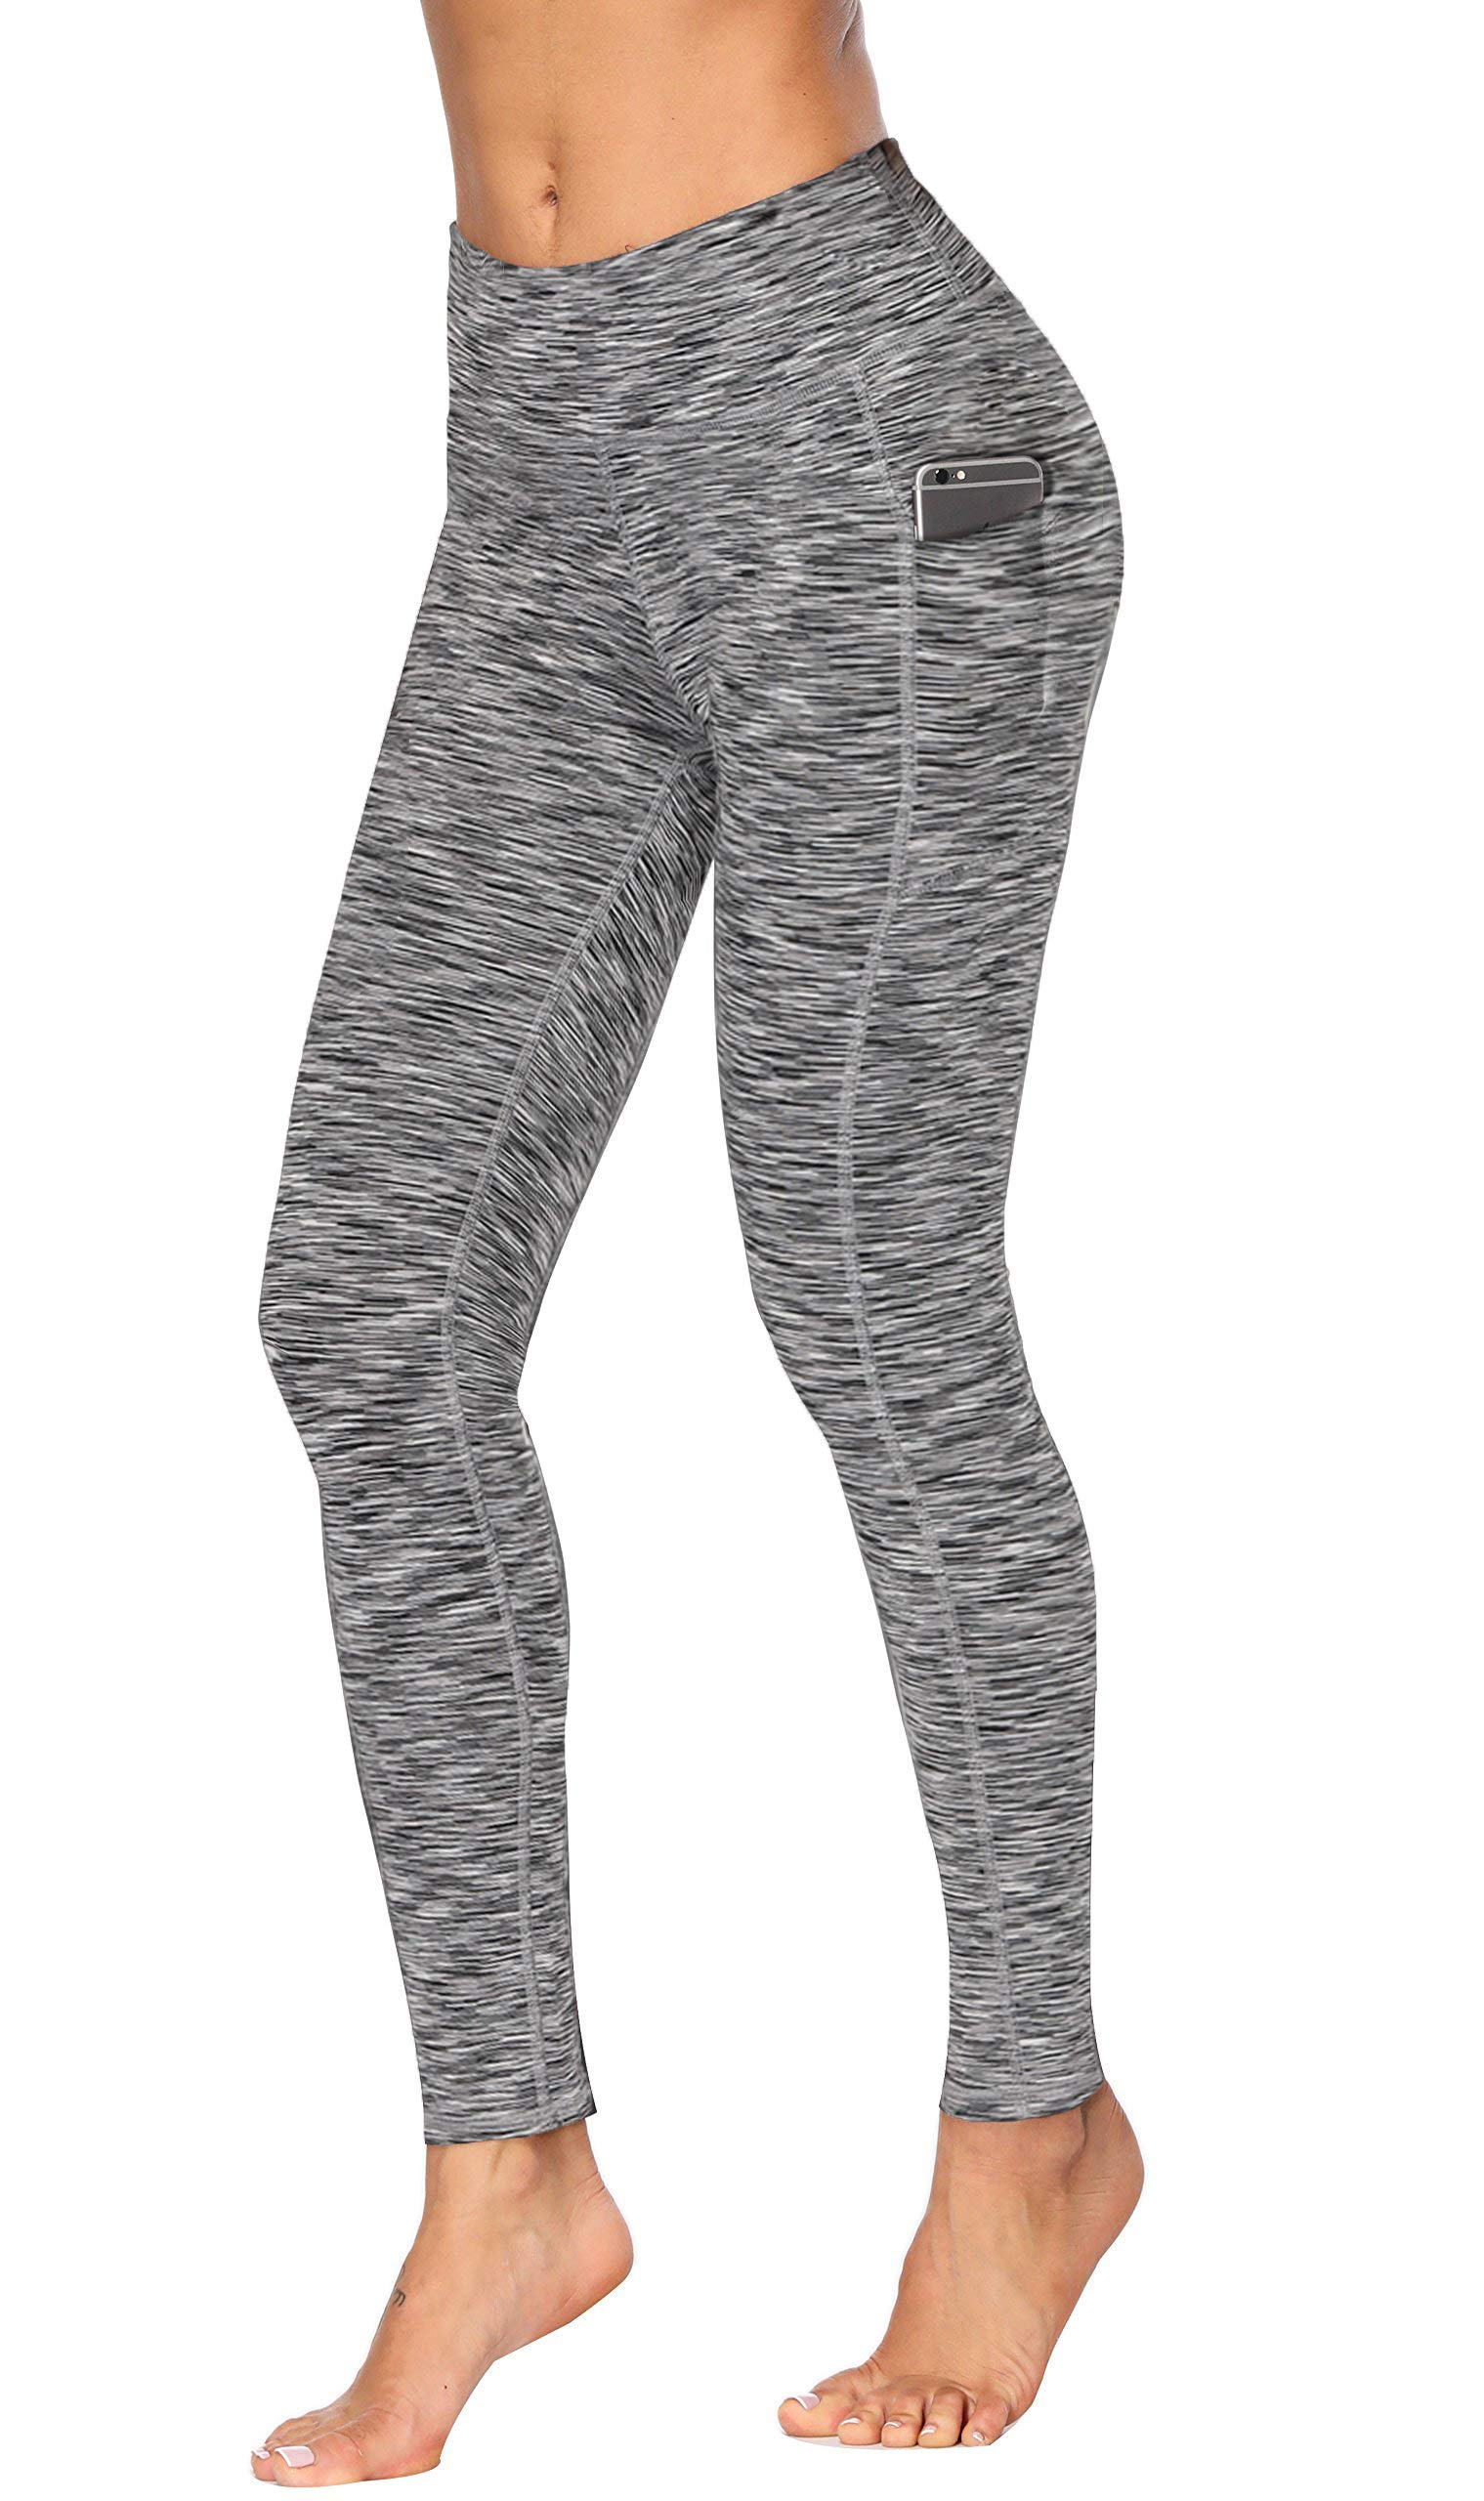 Fengbay High Waist Yoga Pants, Pocket Yoga Pants Tummy Control Workout Running 4 Way Stretch Yoga Leggings (X-Small, 1554 Gery) by Fengbay (Image #1)